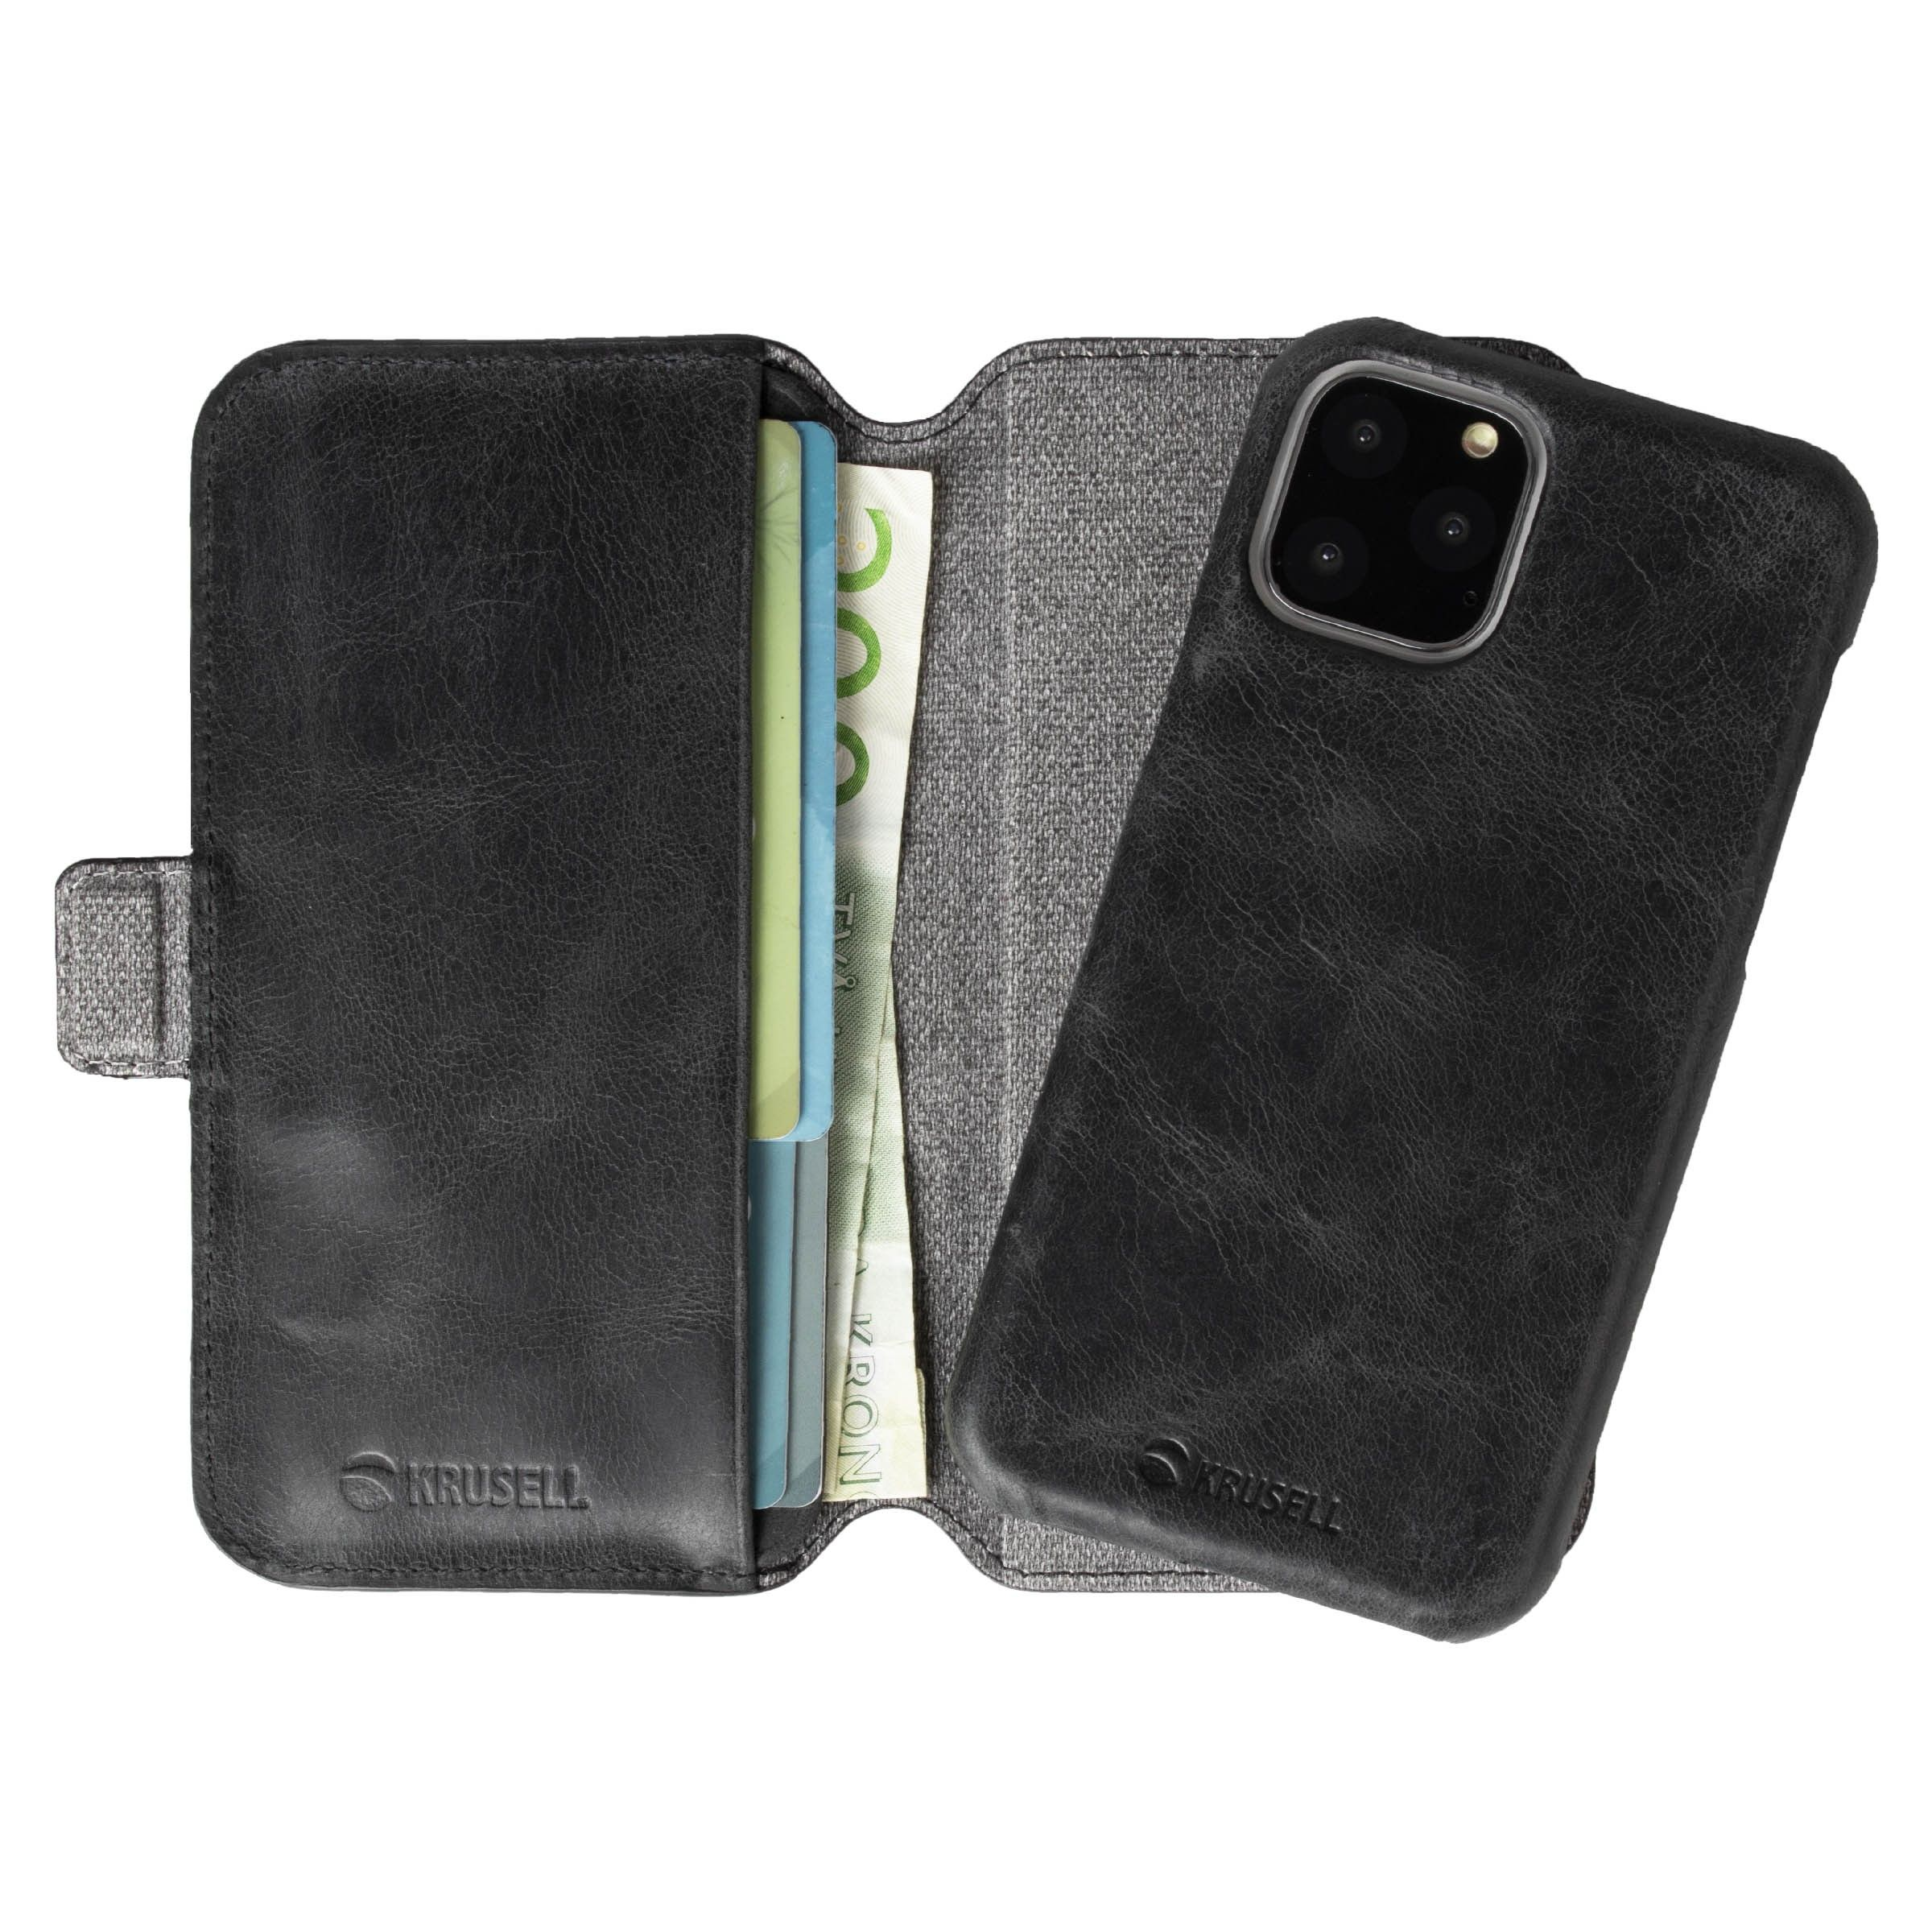 Krusell Sunne Phone Wallet 2in1 (iPhone 11 Pro Max)